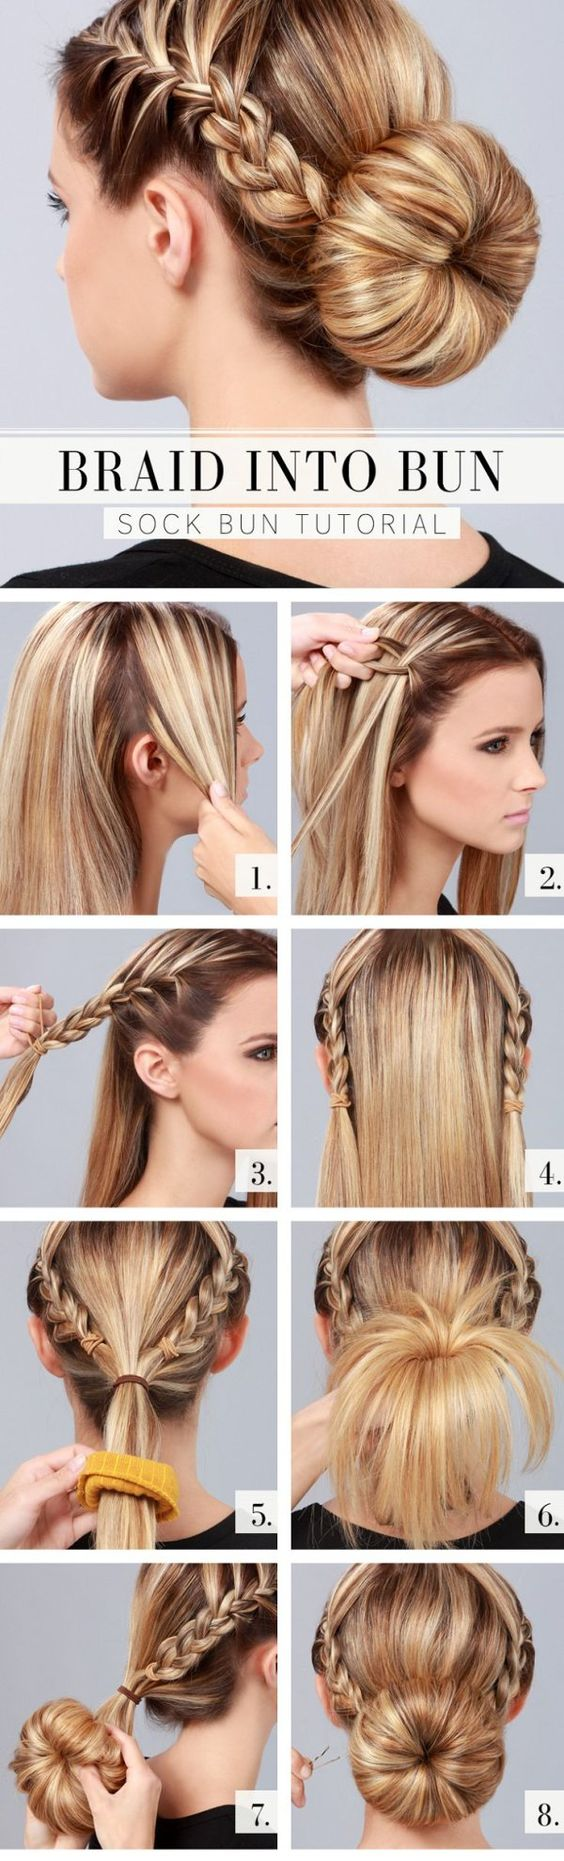 Braid Into Bun Tutorial Peinados Pinterest